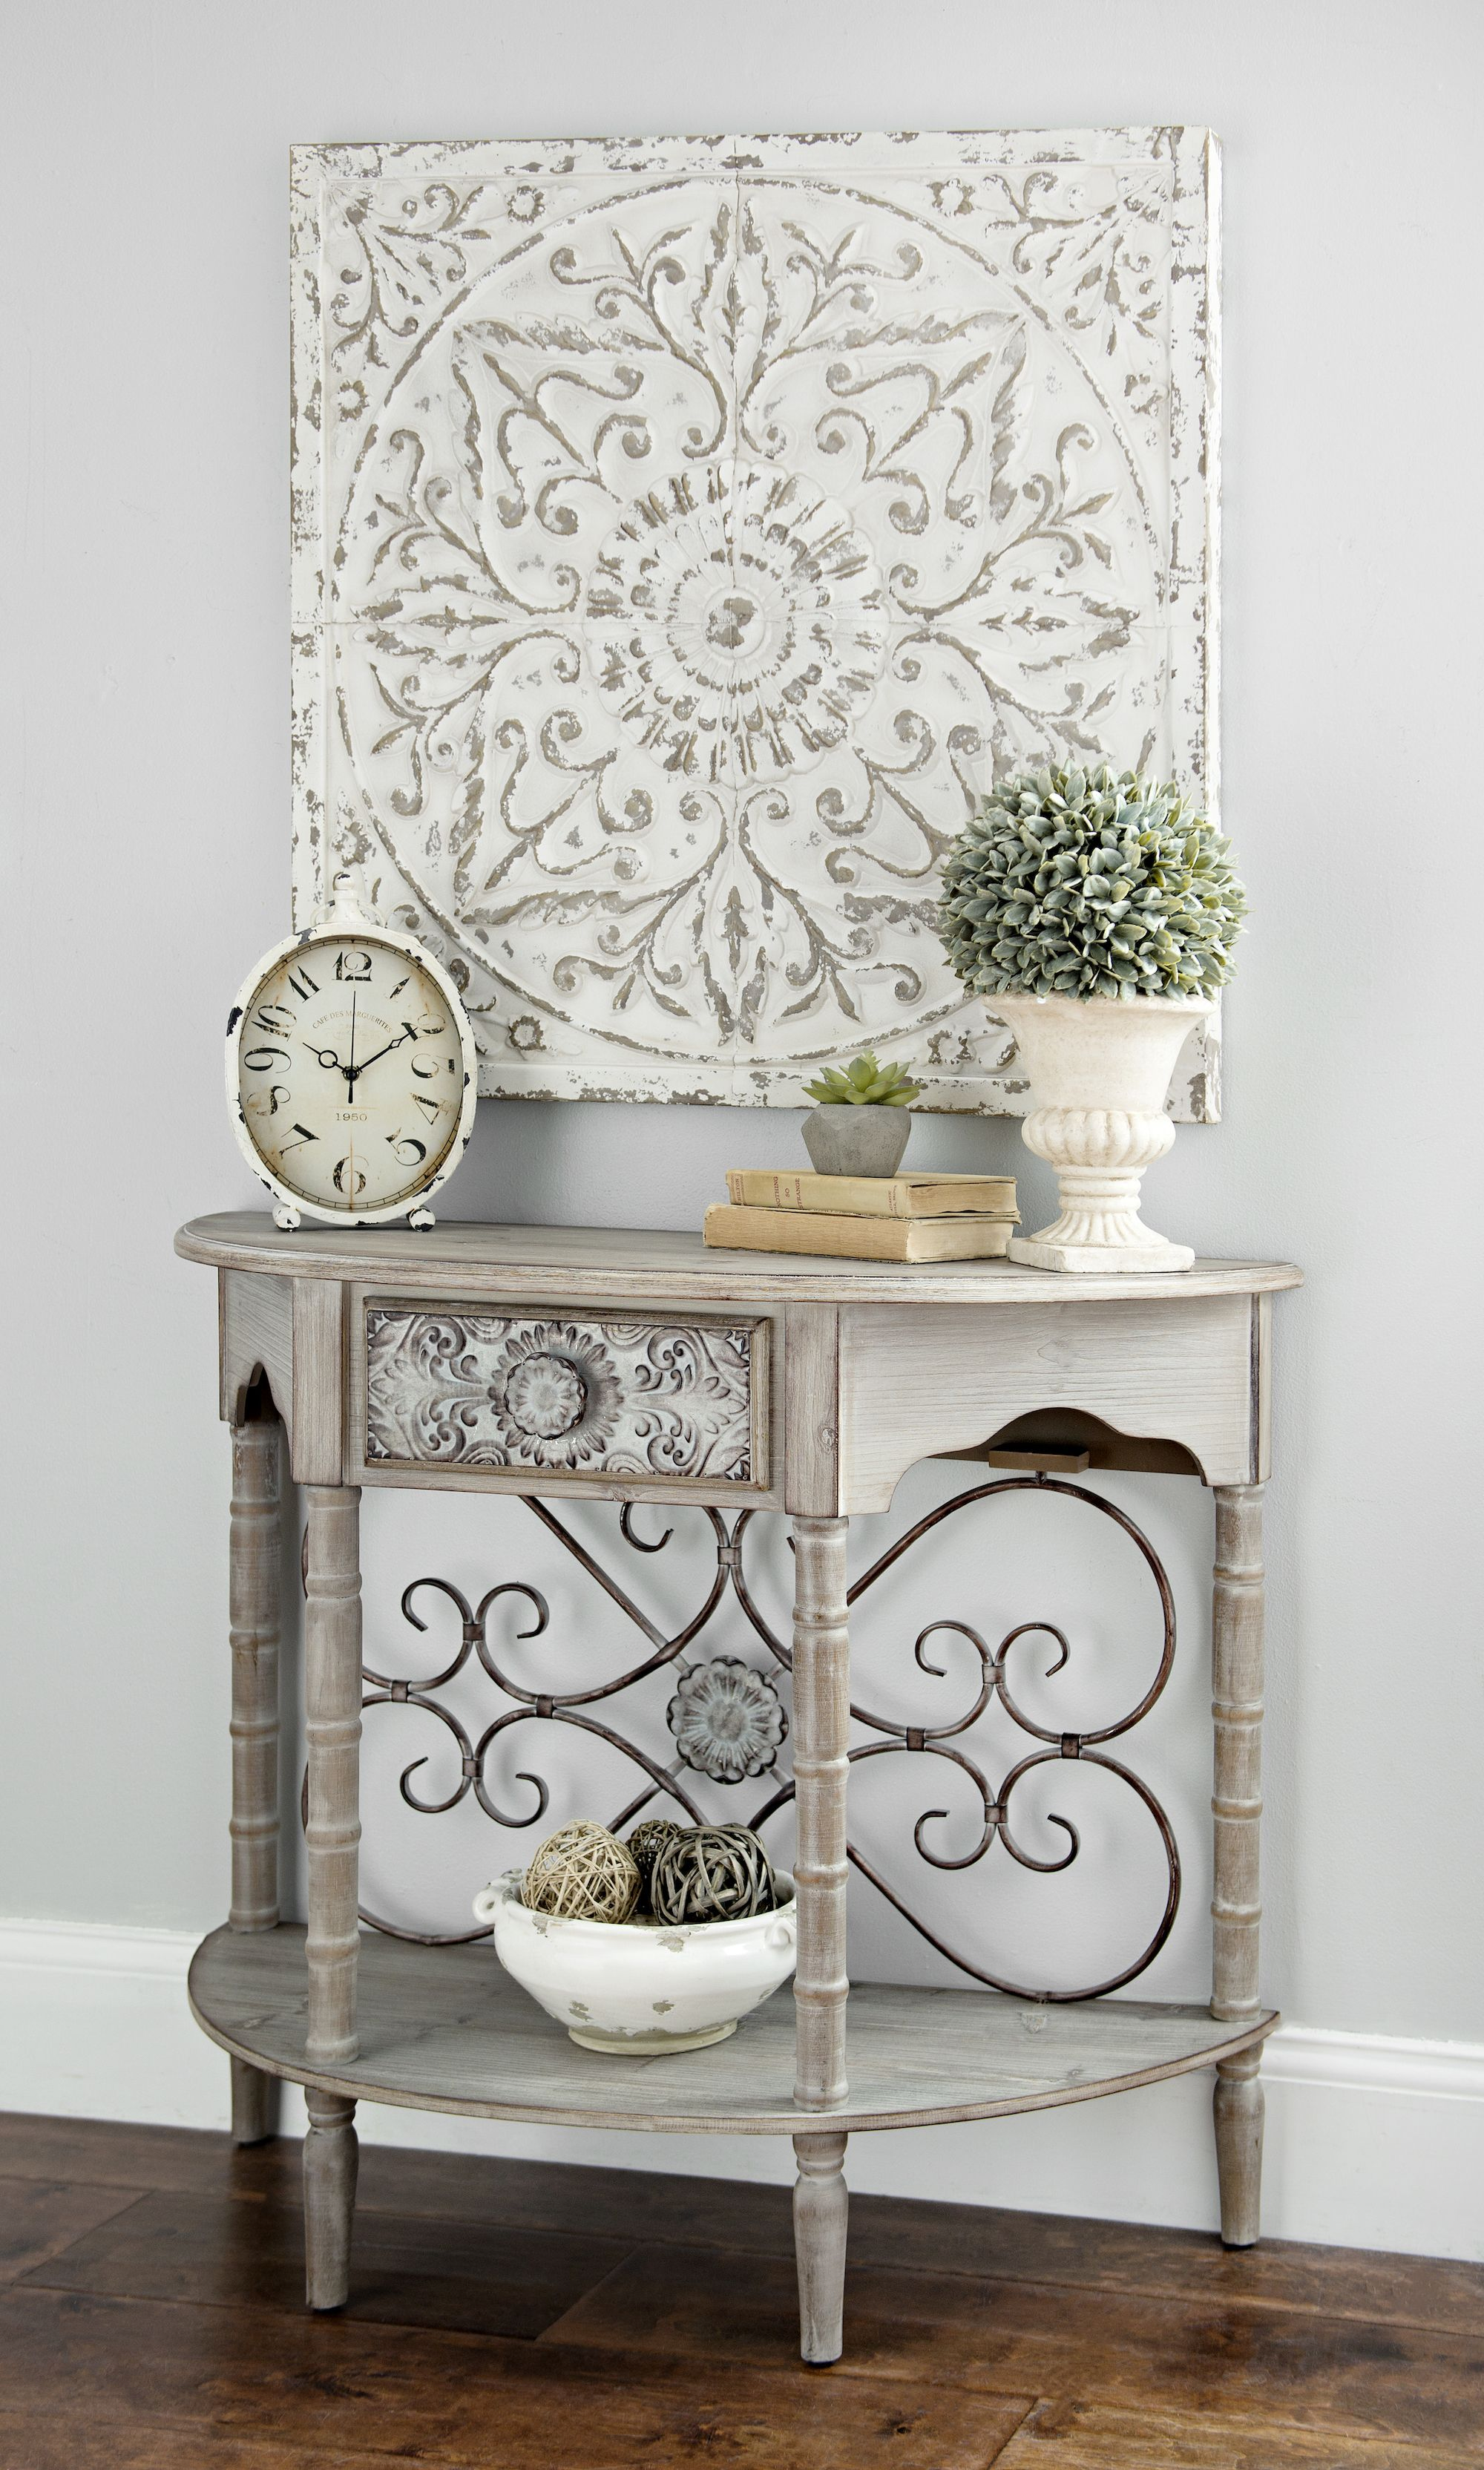 superb Square Metal Wall Decor Part - 17: Add antique charm to your modern home with the u0027Galvanized Square Medallion Metal  Wall Plaqueu0027 from Kirklandu0027s. Shop this look today and upgrade your decor  ...